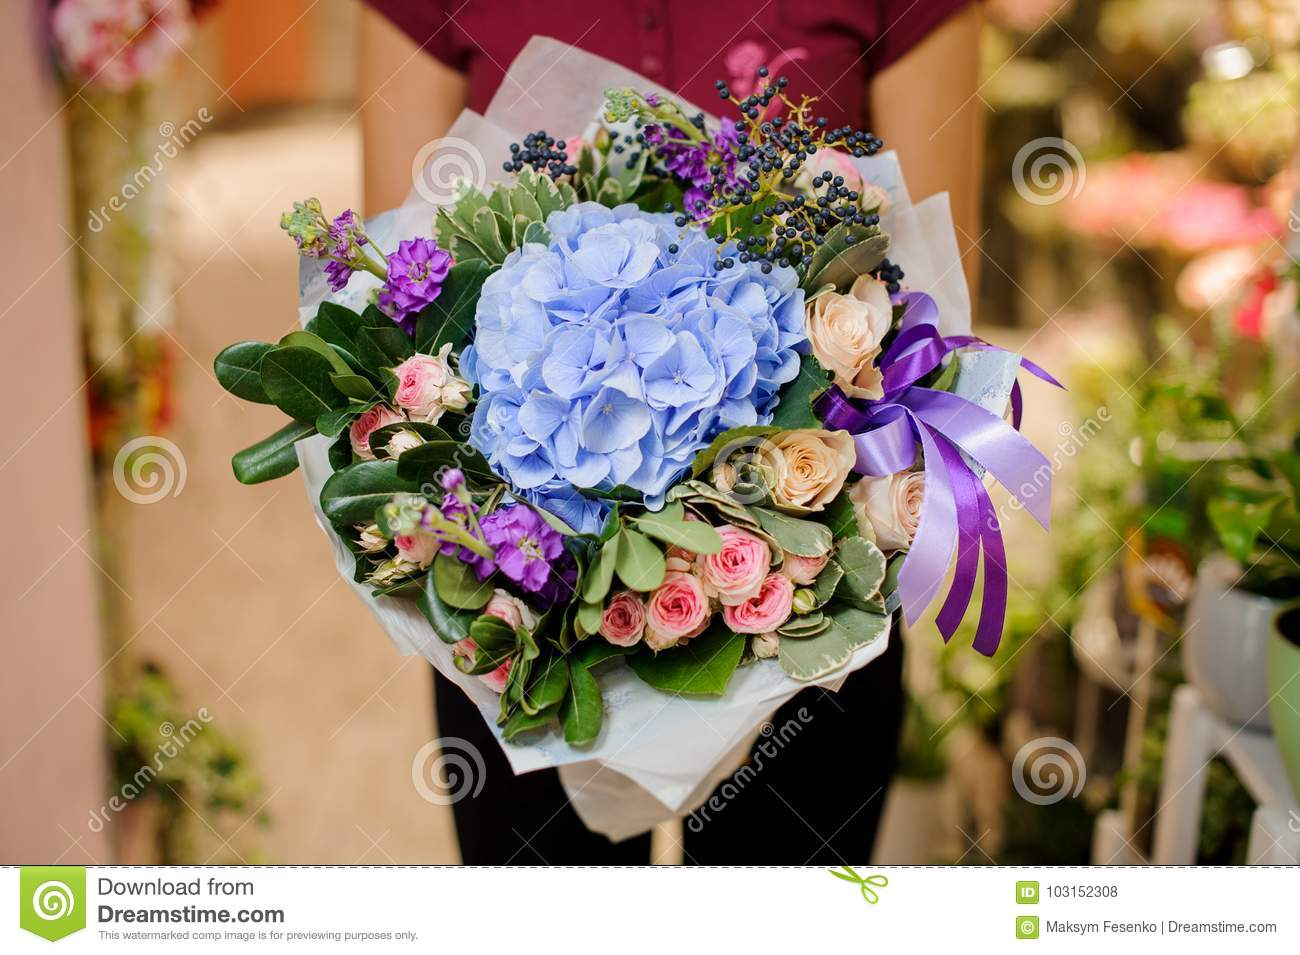 Refined and elegant bouquet of beautiful flowers stock photo image download refined and elegant bouquet of beautiful flowers stock photo image of festive fresh izmirmasajfo